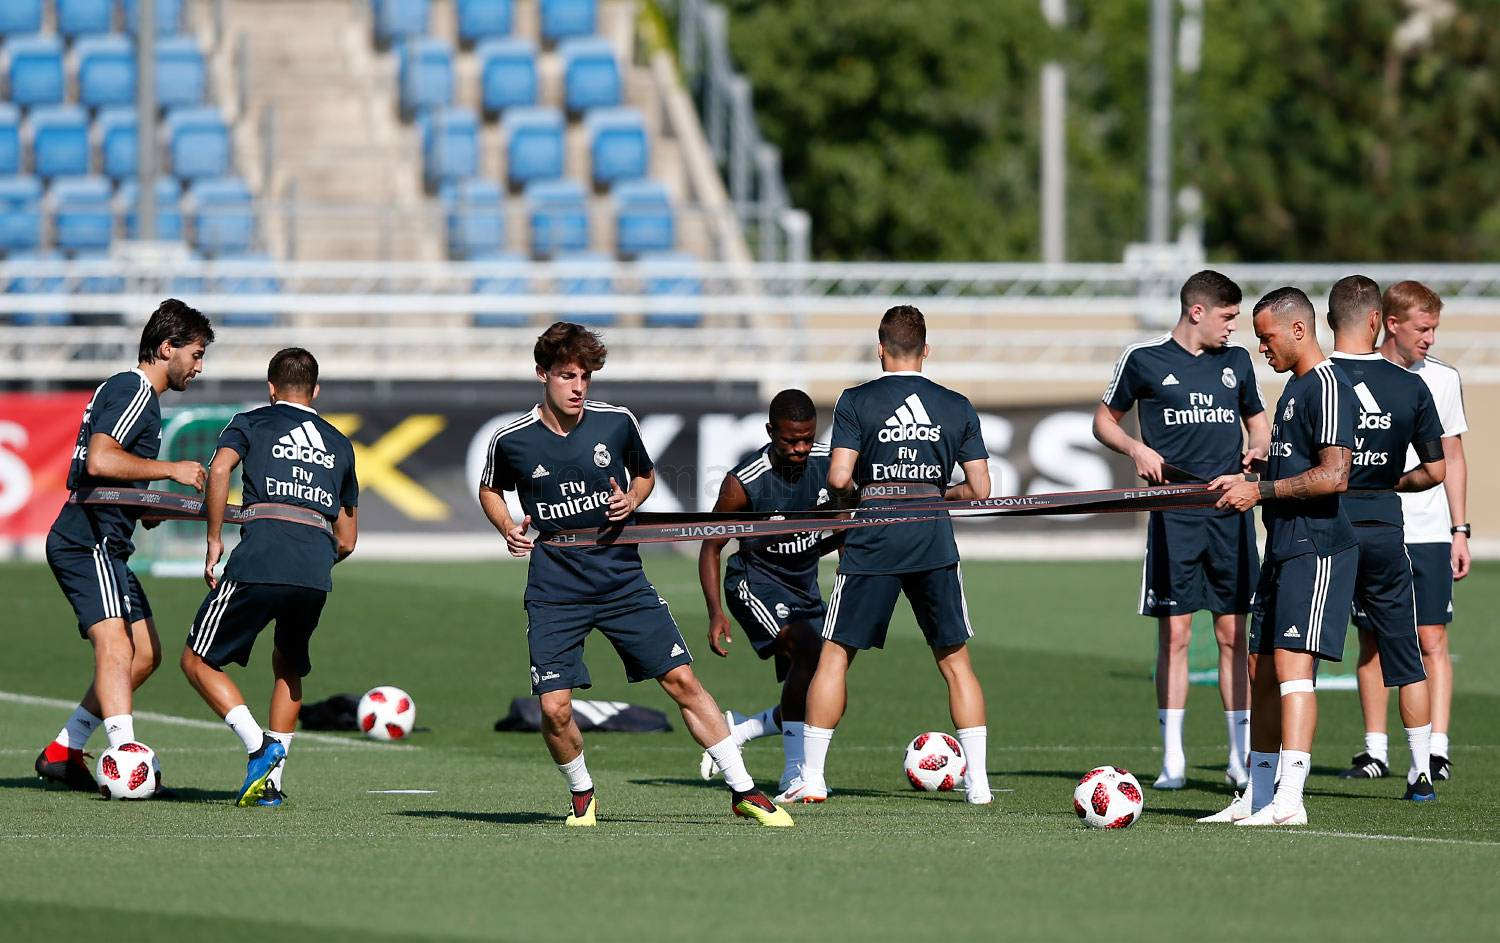 Real Madrid - Entrenamiento del Real Madrid - 19-07-2018